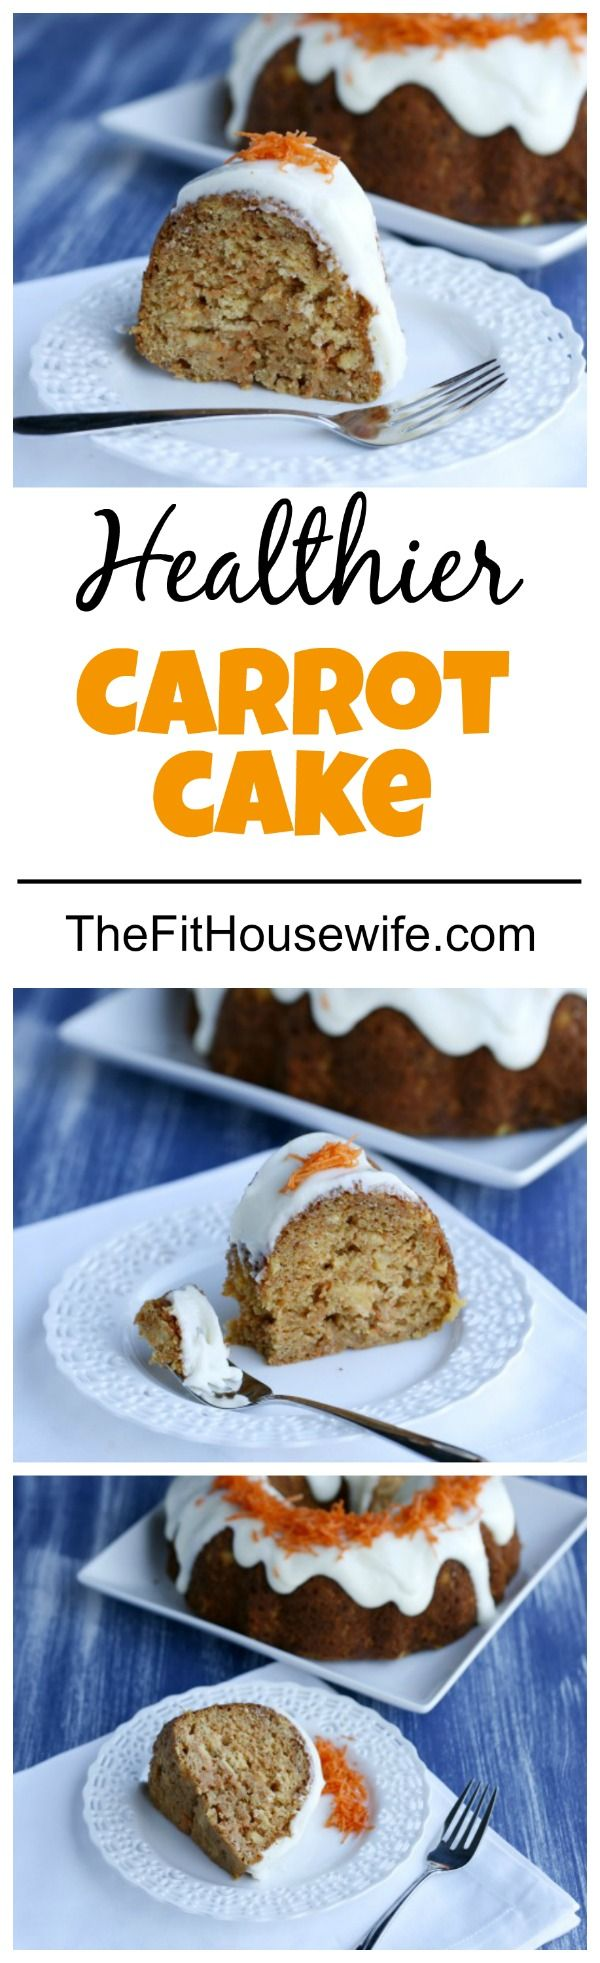 Healthy Carrot Cake. A delicious and healthier version of the classic carrot cake!